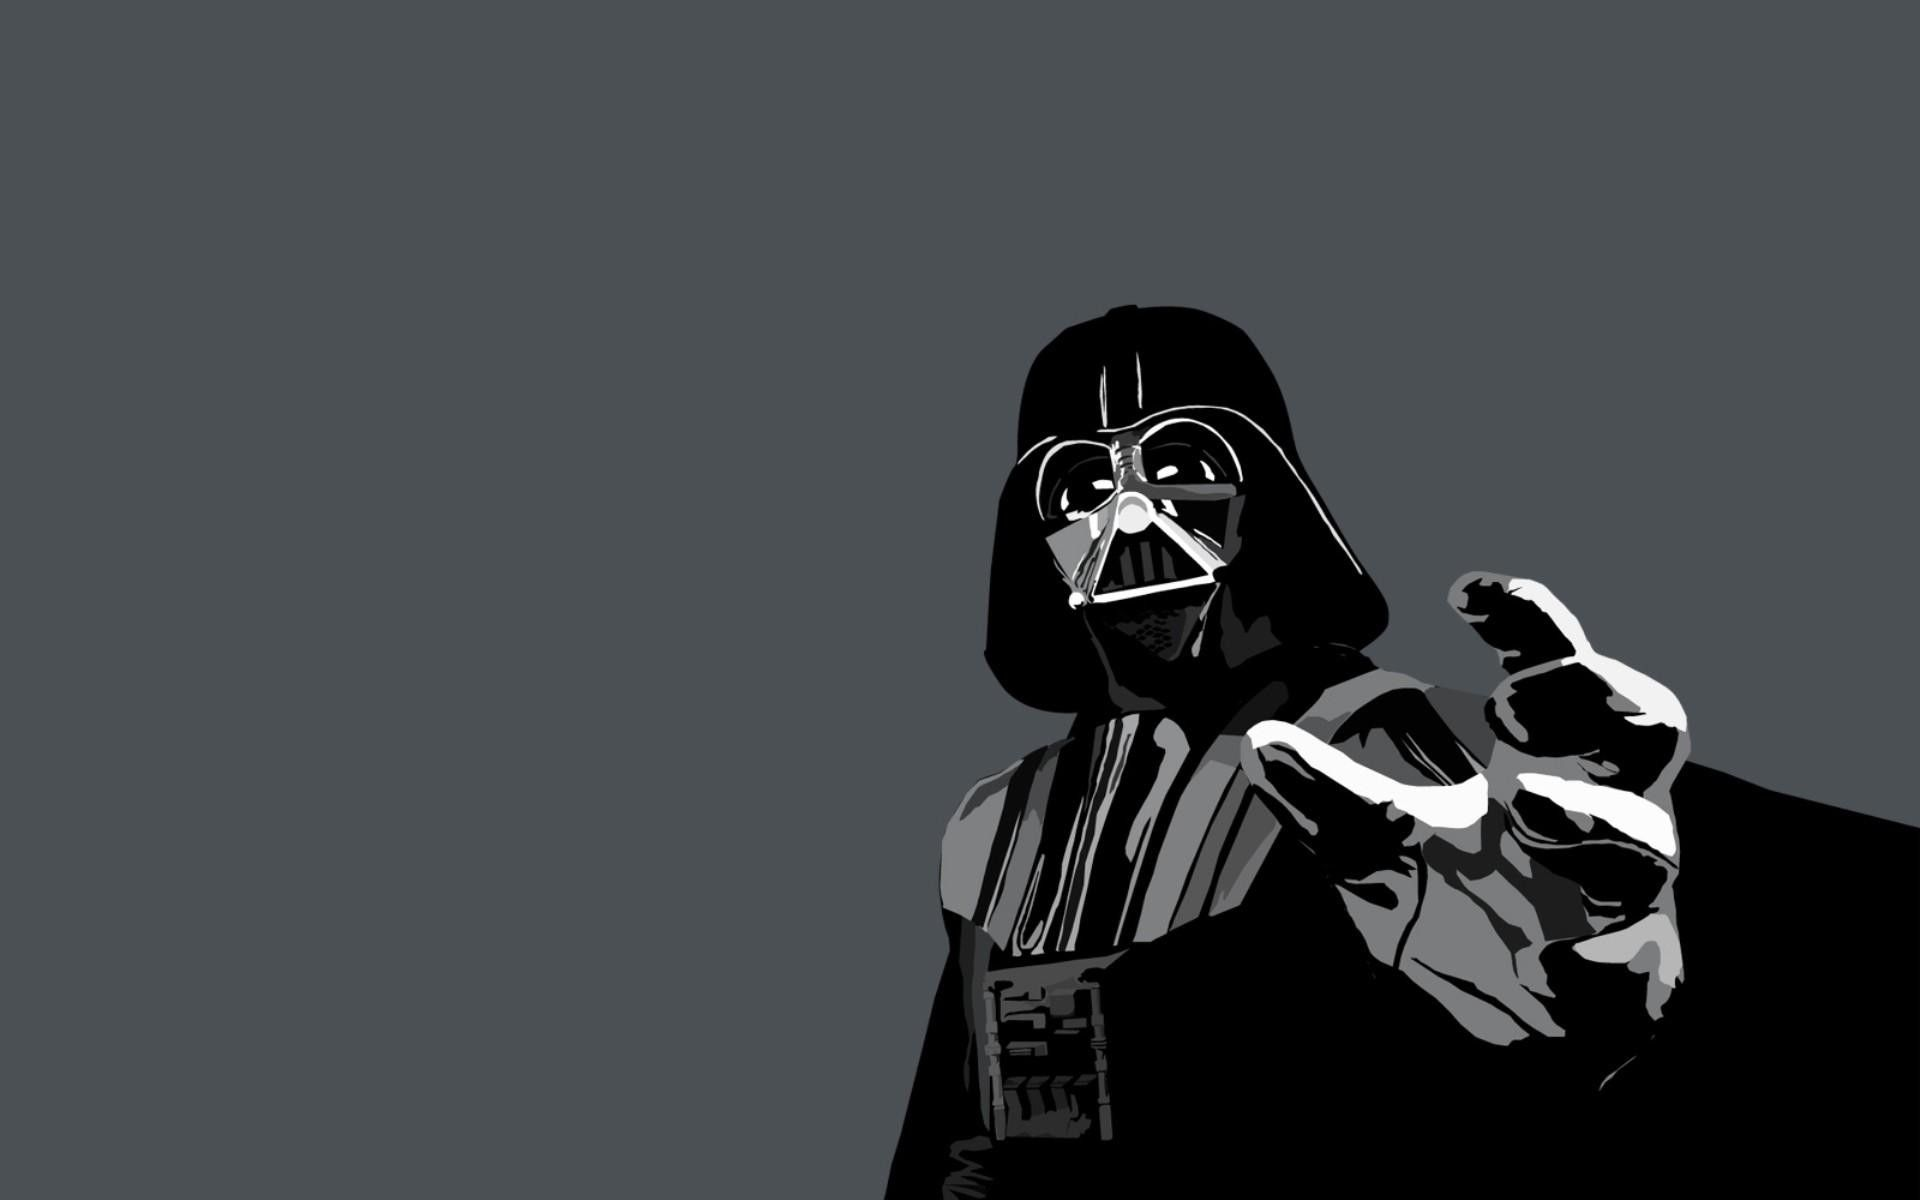 Star Wars Christmas Wallpaper 1920x1200 Pictures Darth Vader